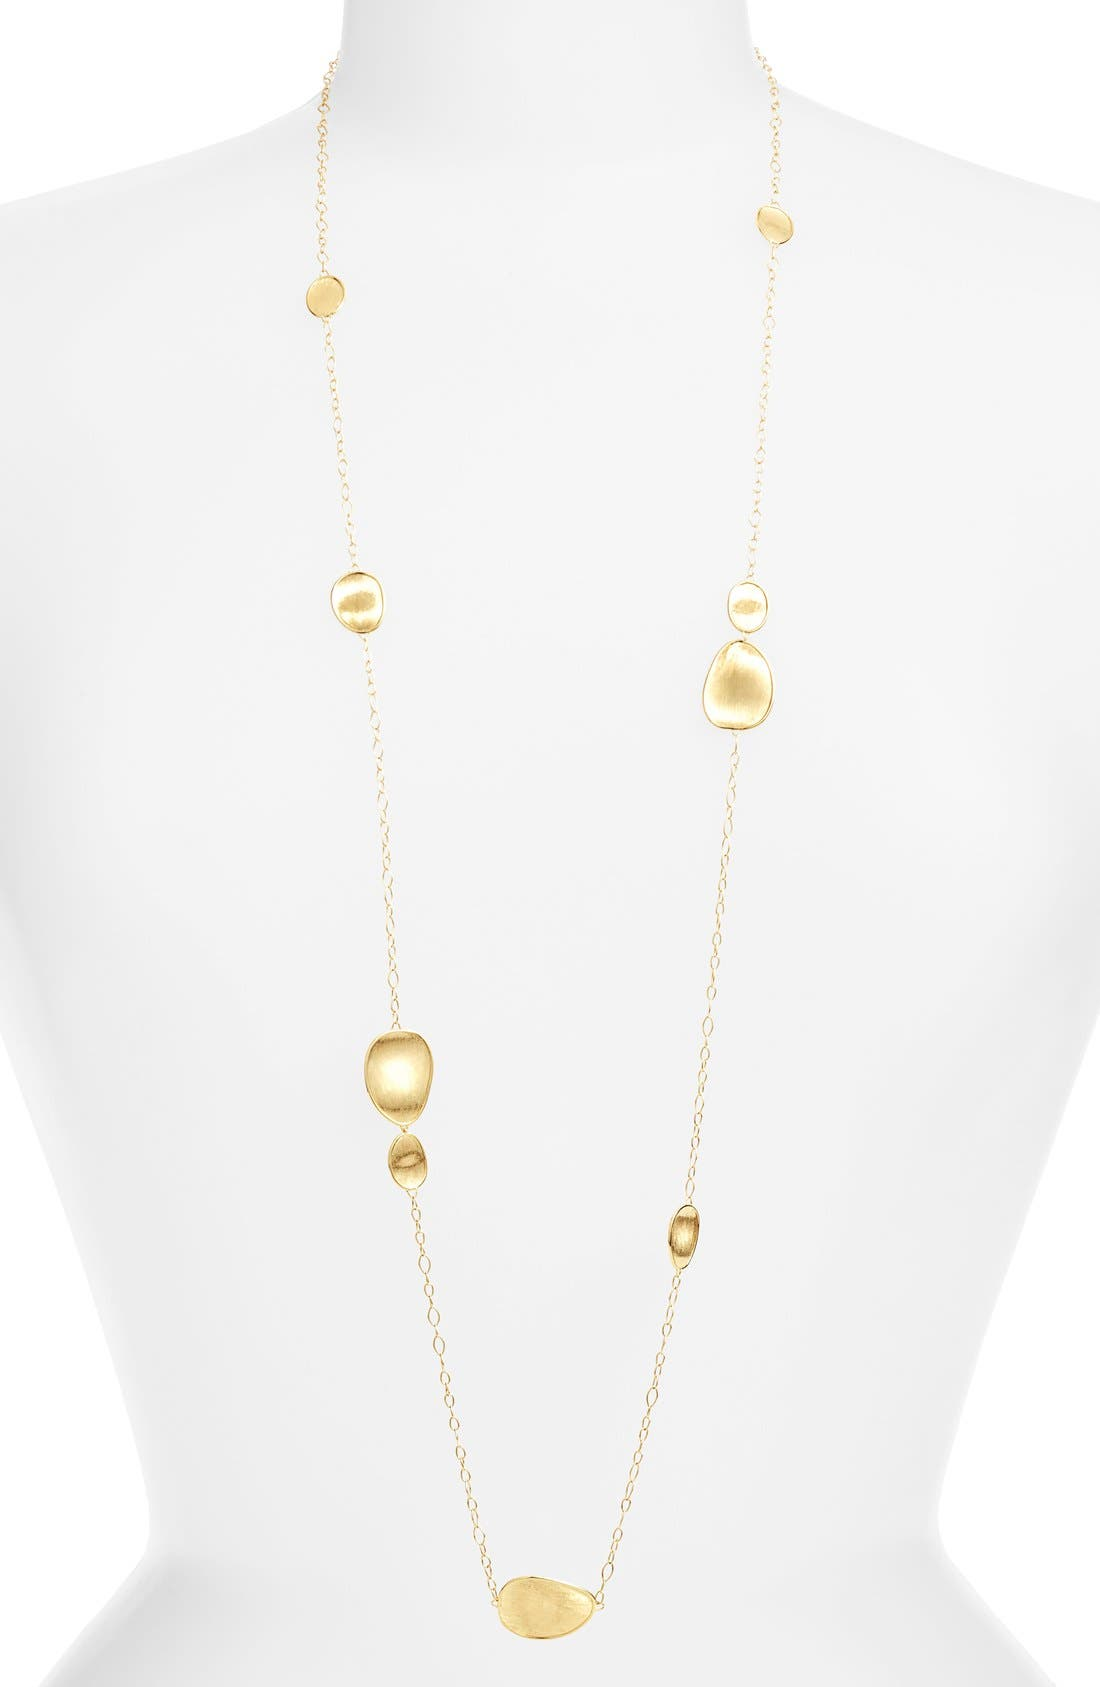 MARCO BICEGO 'Lunaria' Long Station Necklace